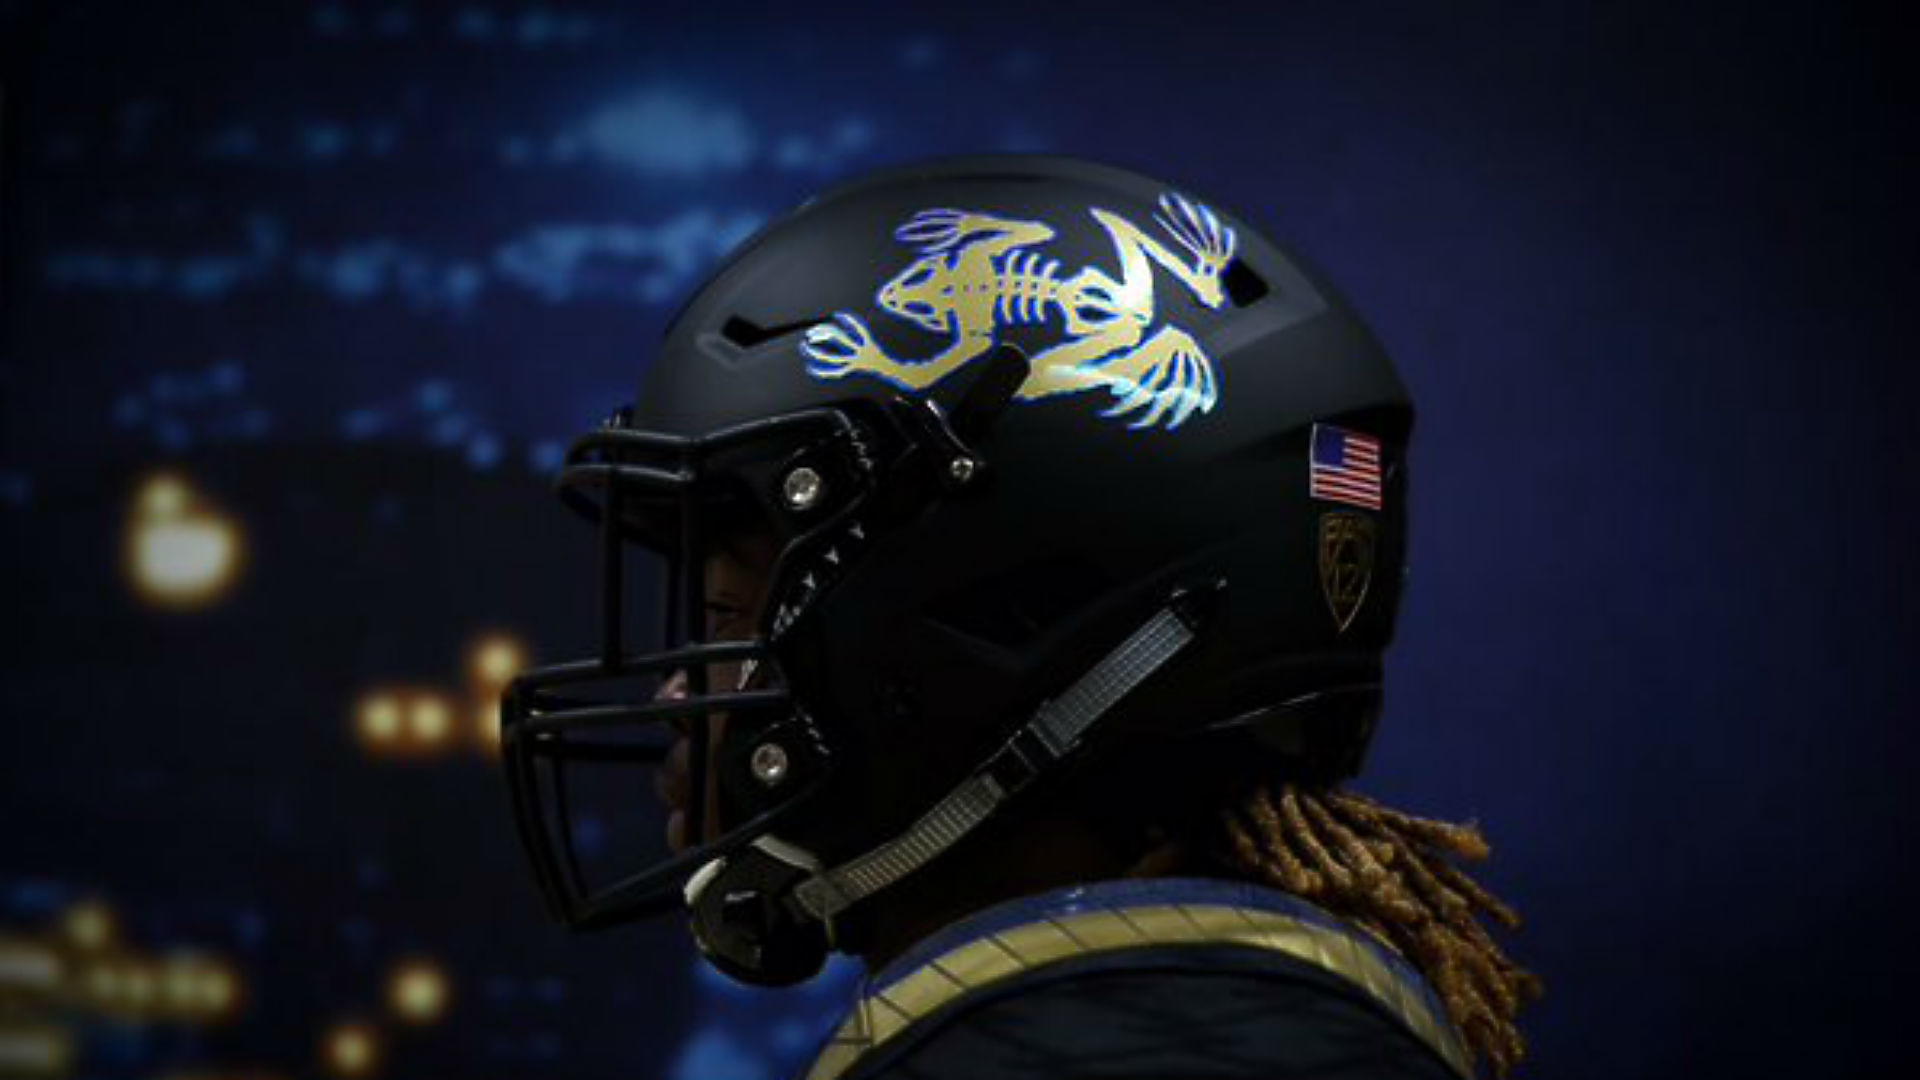 UCLA unveils 'frogman' helmets for Saturday's game | NCAA Football |  Sporting News